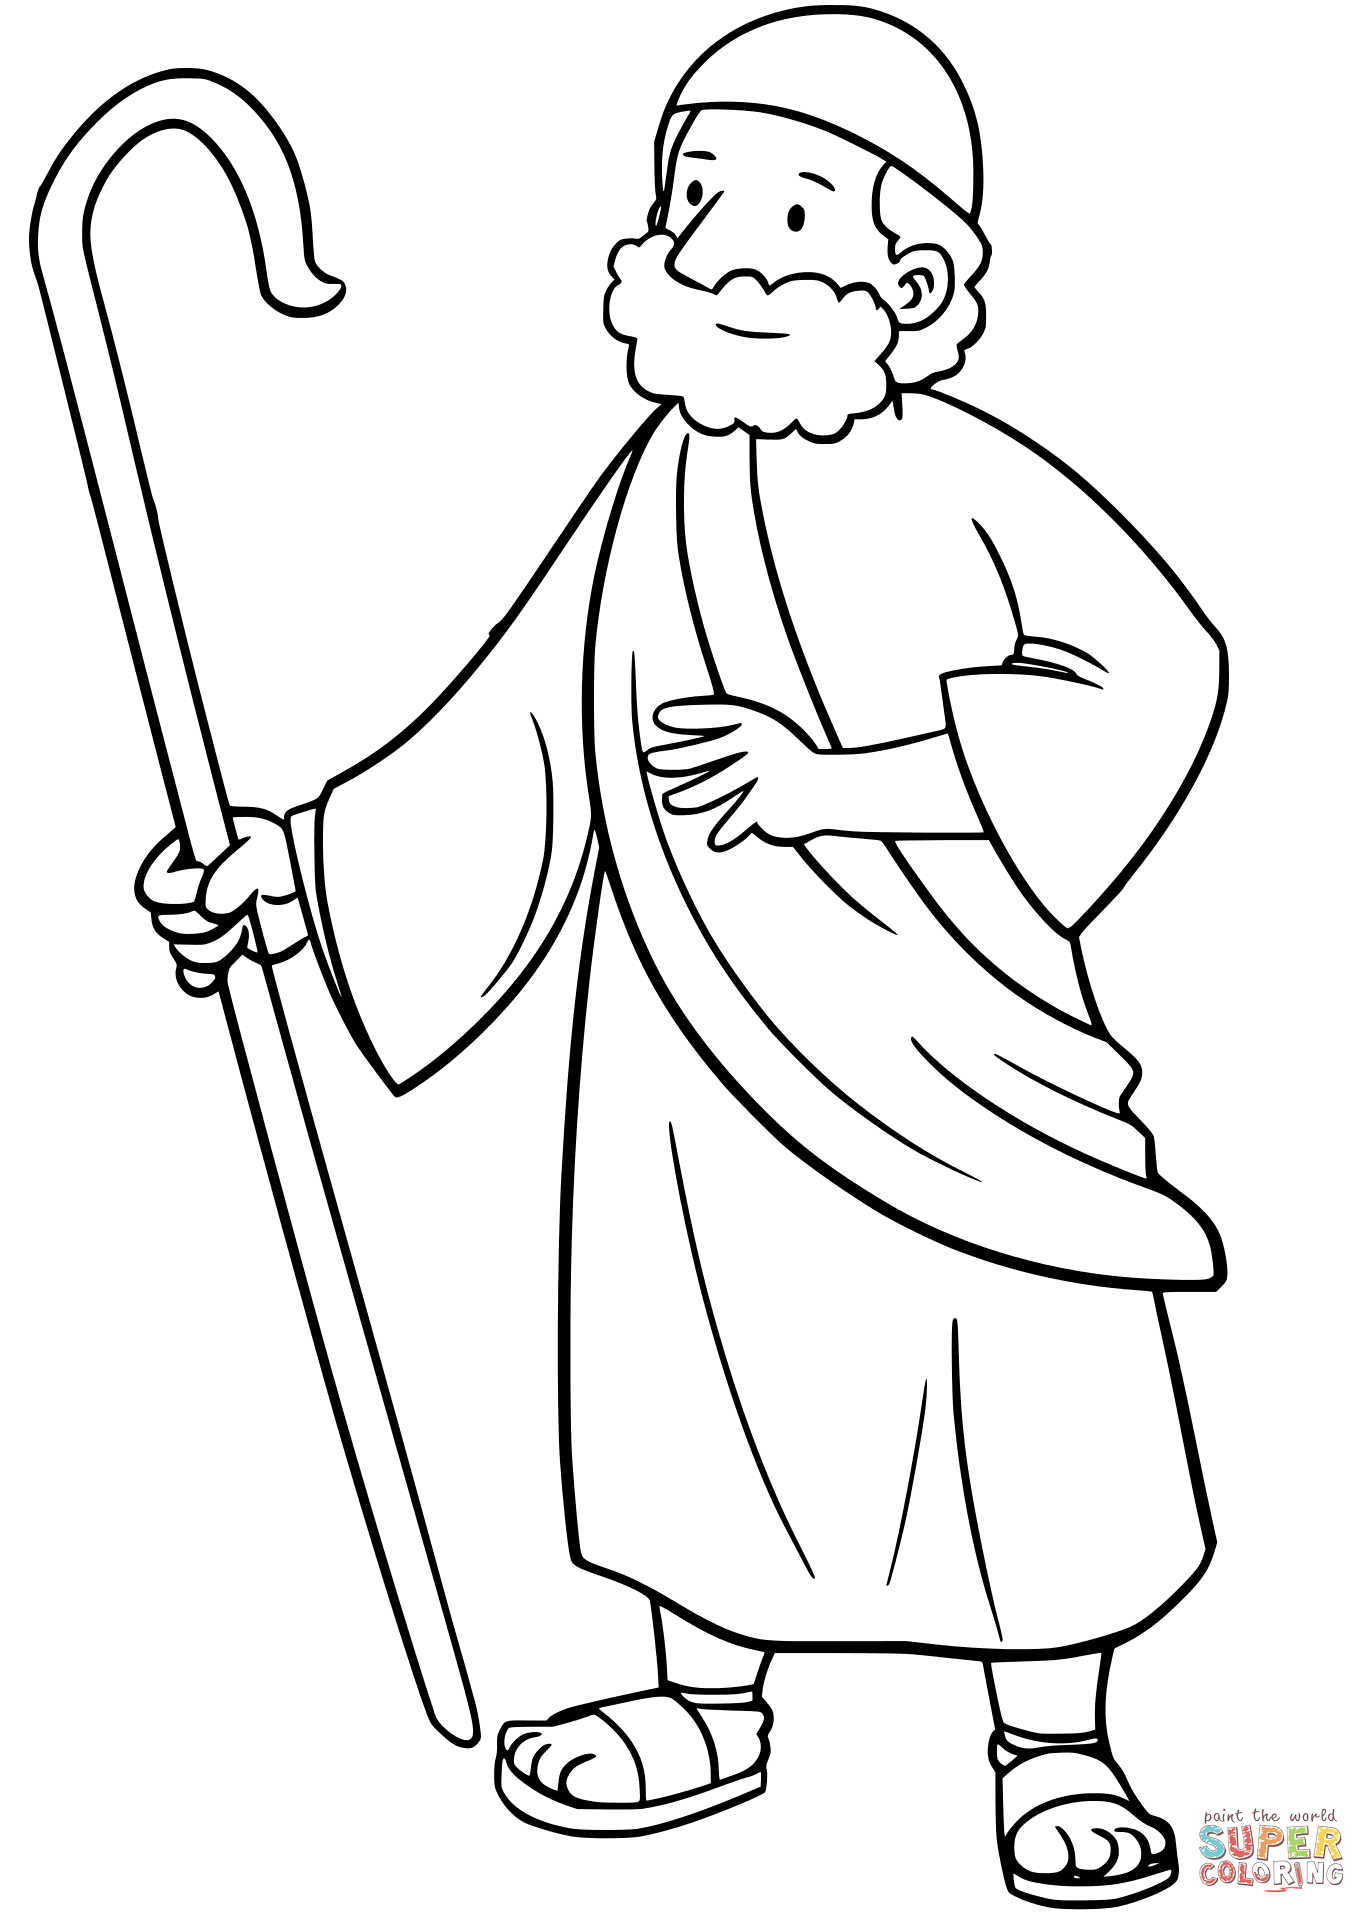 moses coloring pages glorious jesus coloring bible coloring free printable pages coloring moses